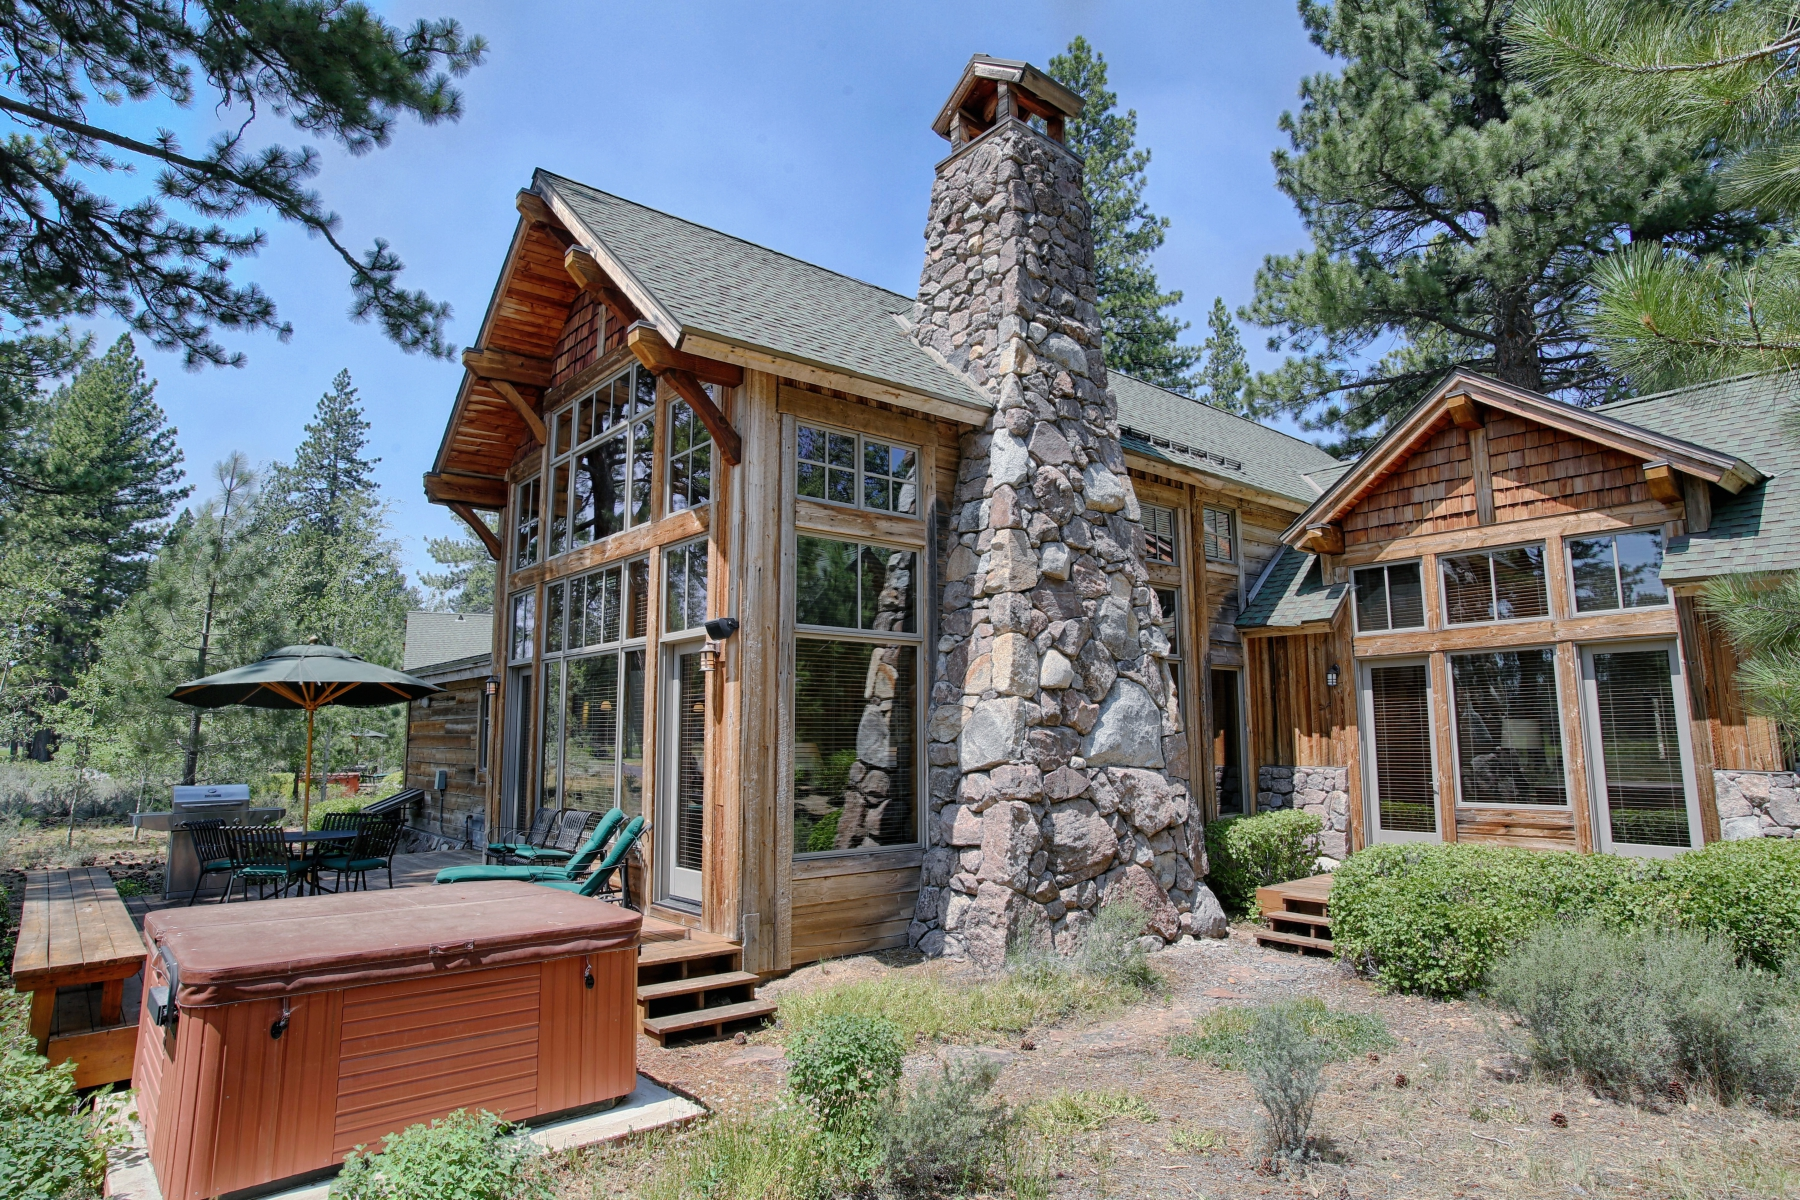 Single Family Home for Active at 12220 Lookout Loop F21-26, Truckee, California 96161 12220 Lookout Loop F21-26 Truckee, California 96161 United States